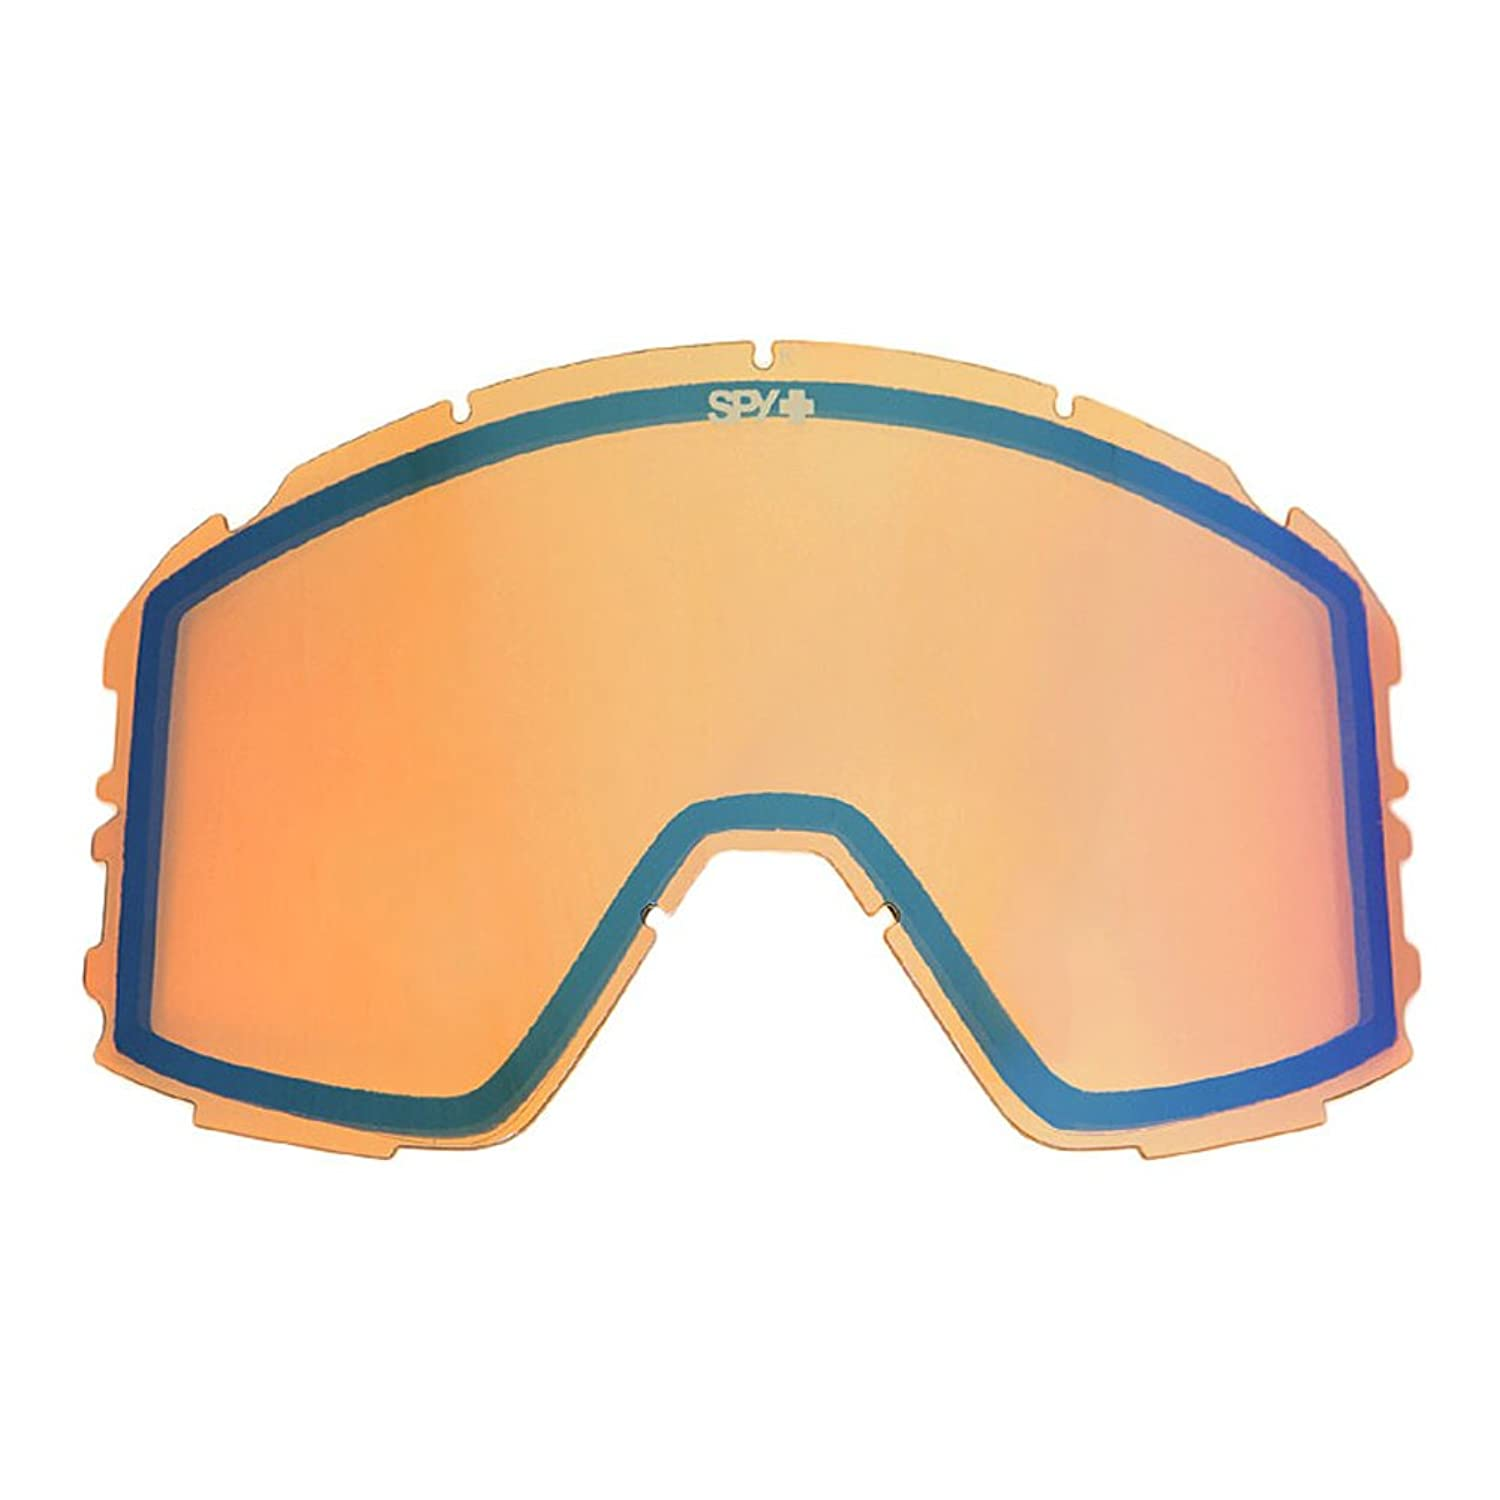 9c46b185ce68 Spy Sunglasses RAIDER Lenses Persimmon Contact: Amazon.co.uk: Sports &  Outdoors